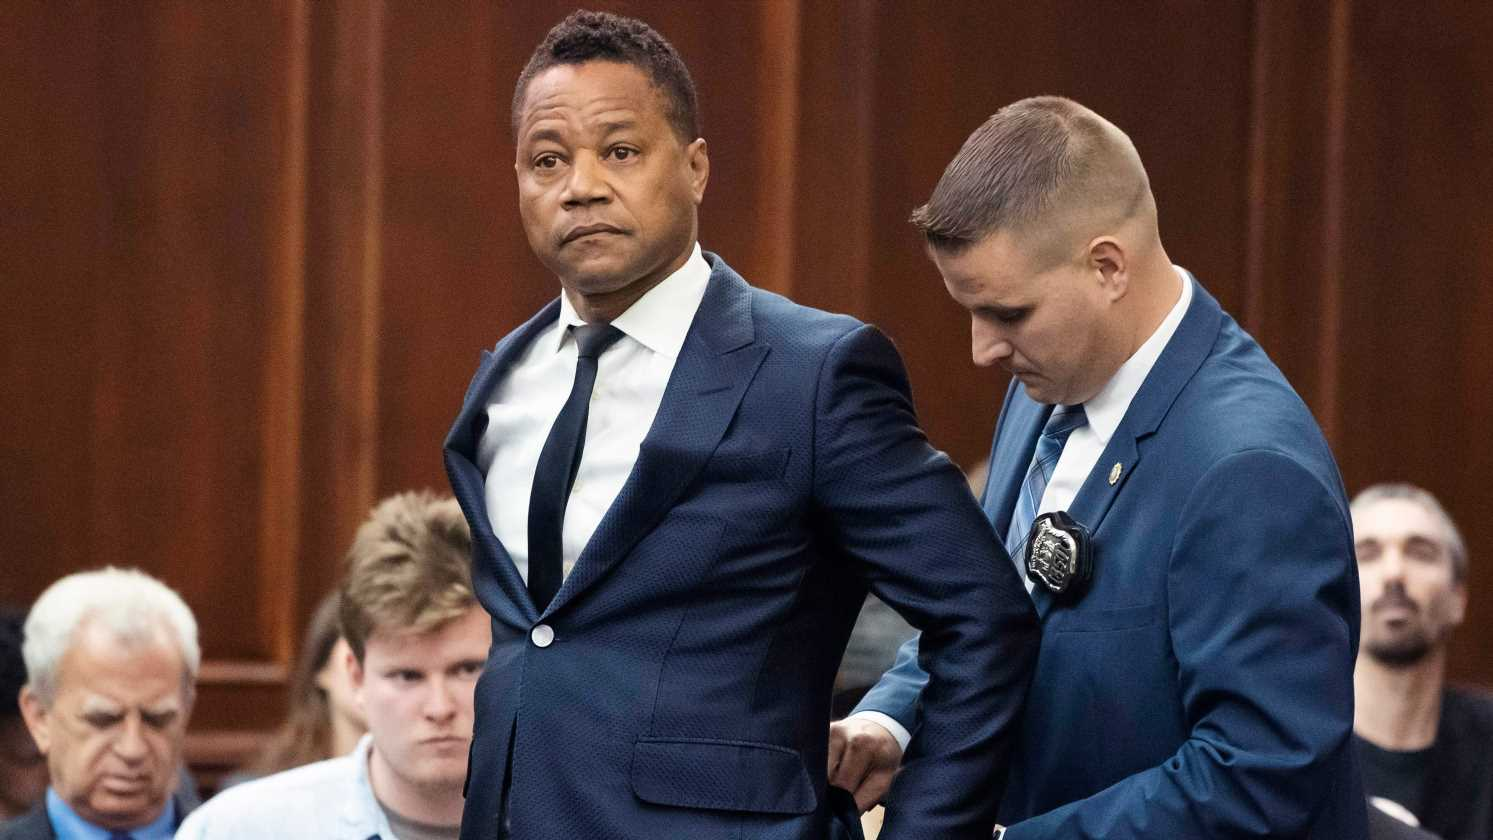 Cuba Gooding Jr. set to appear in court as lawyer seeks to dismiss groping case